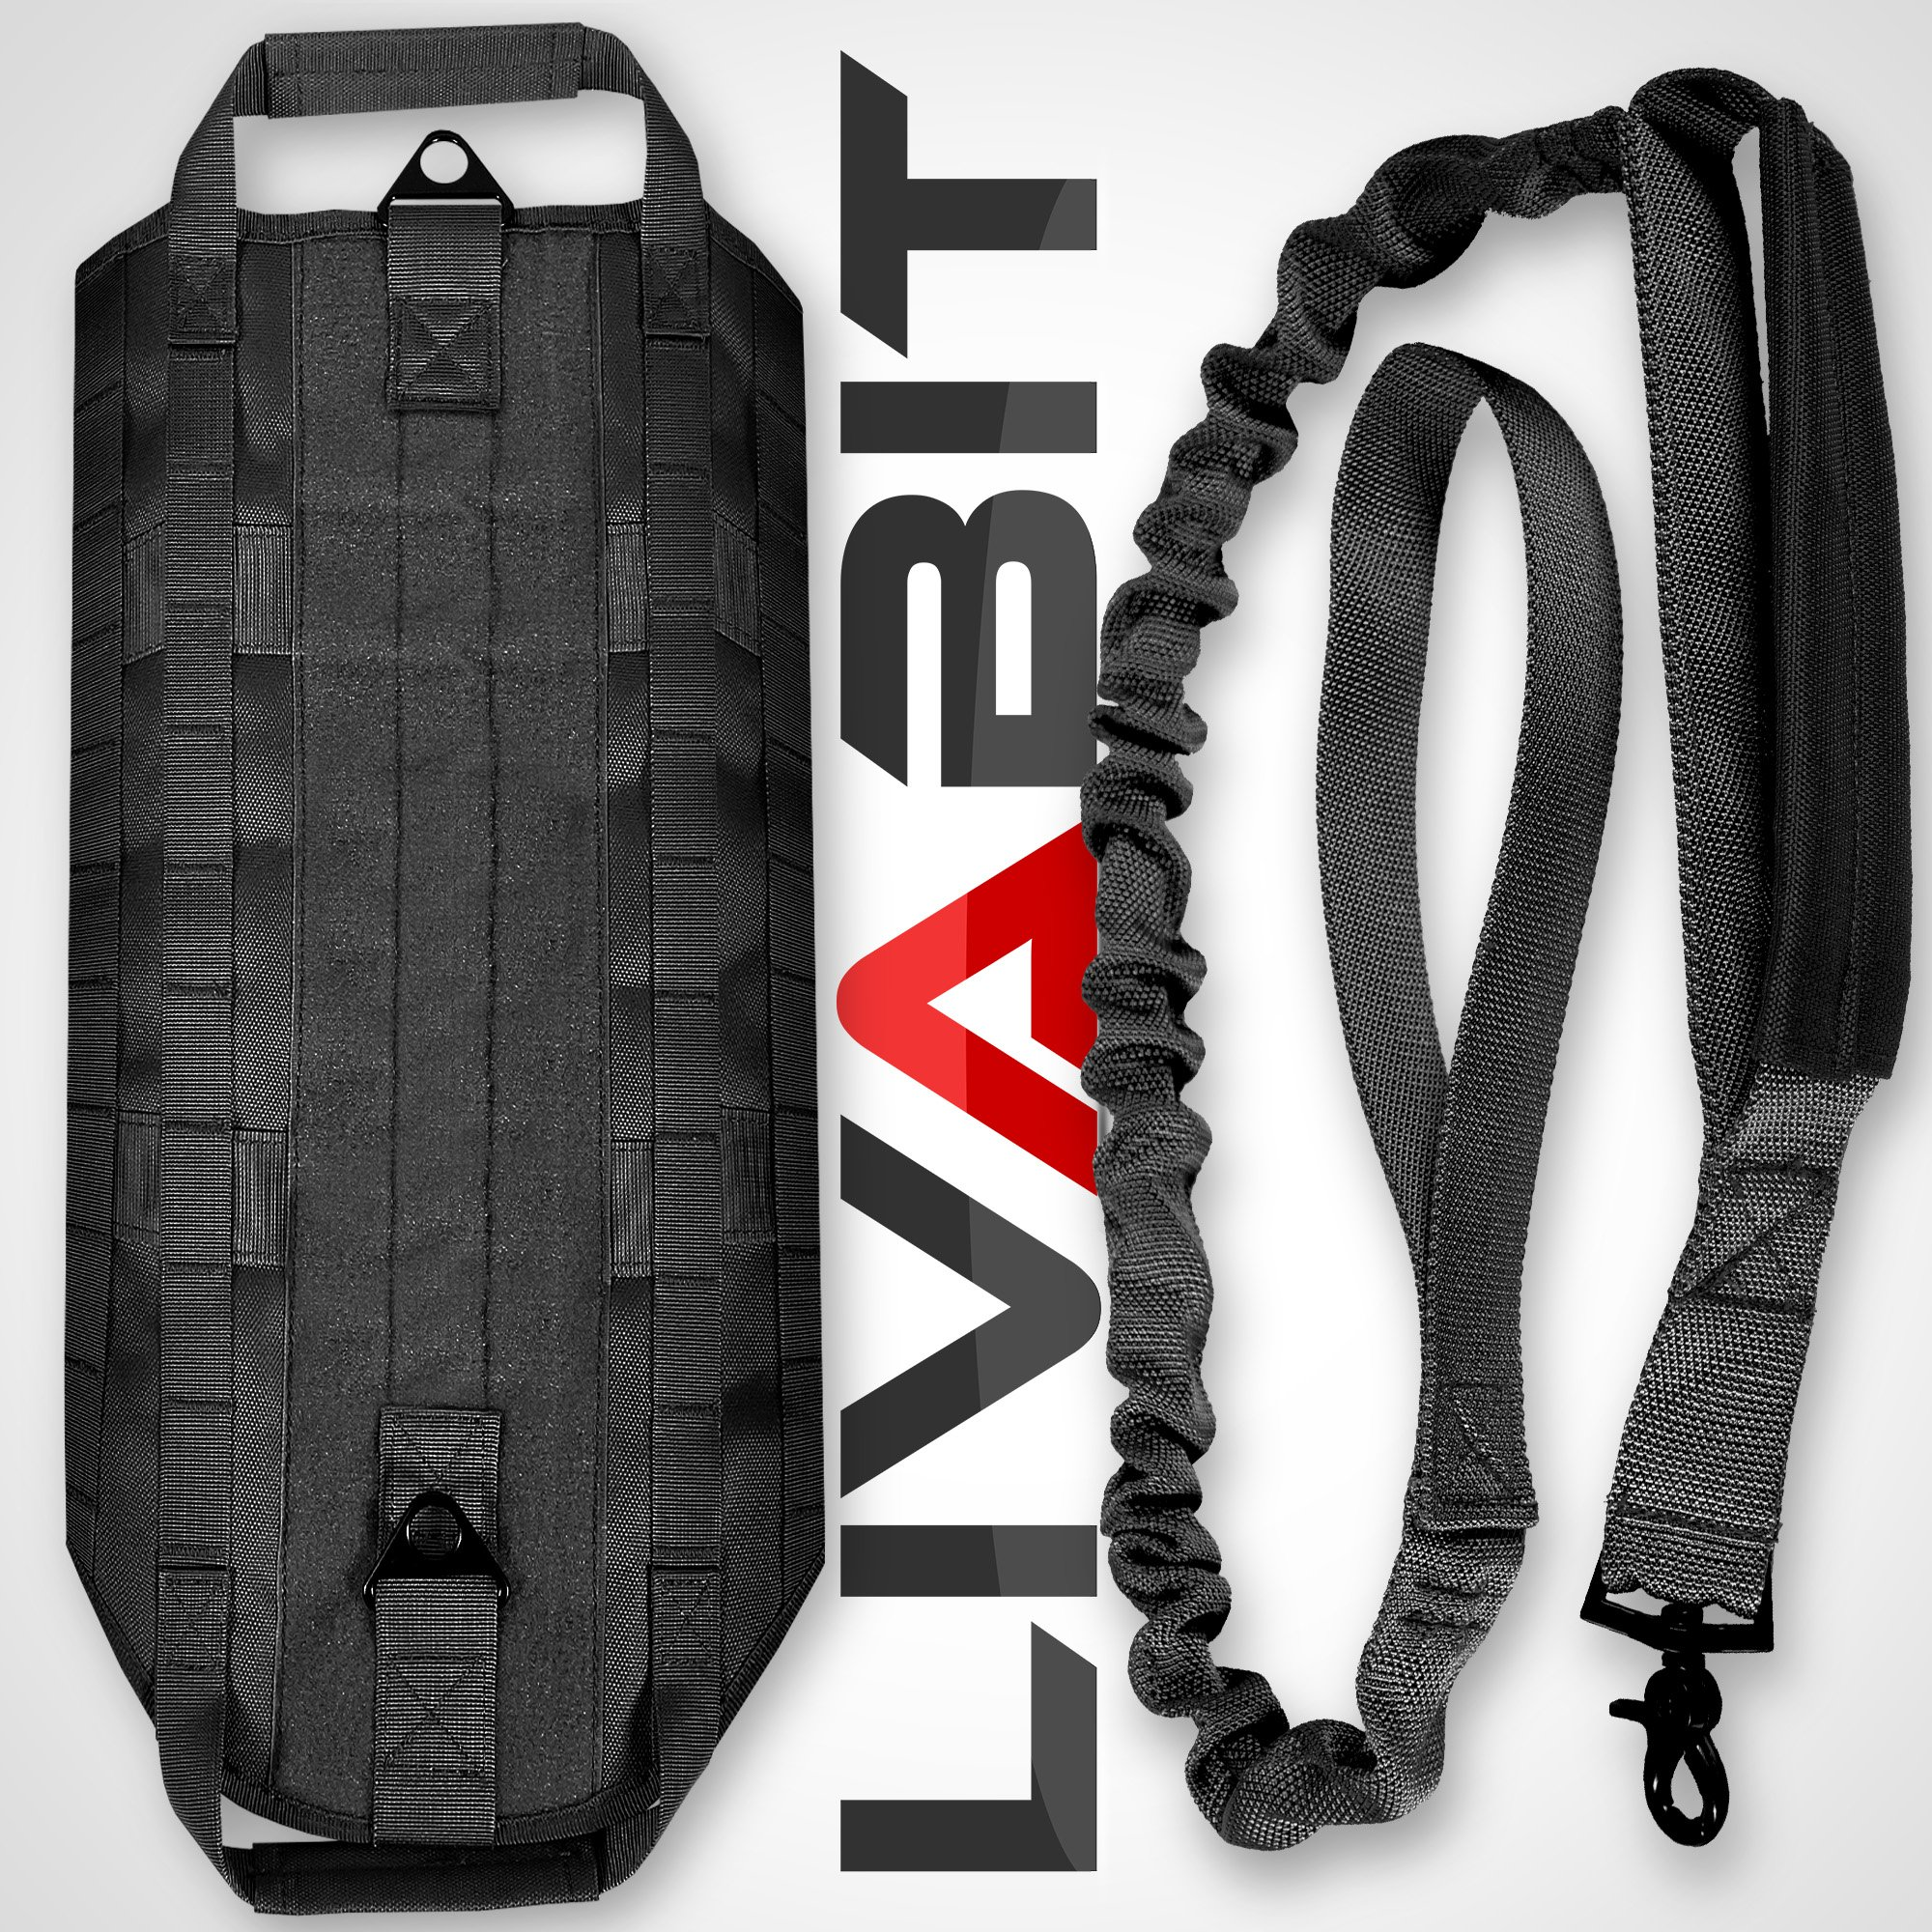 LIVABIT [ Black Canine Service Dog Tactical Molle Vest Harness + Morale PVC Patches + Matching Heavy Duty Bungee Leash Strap X-Large